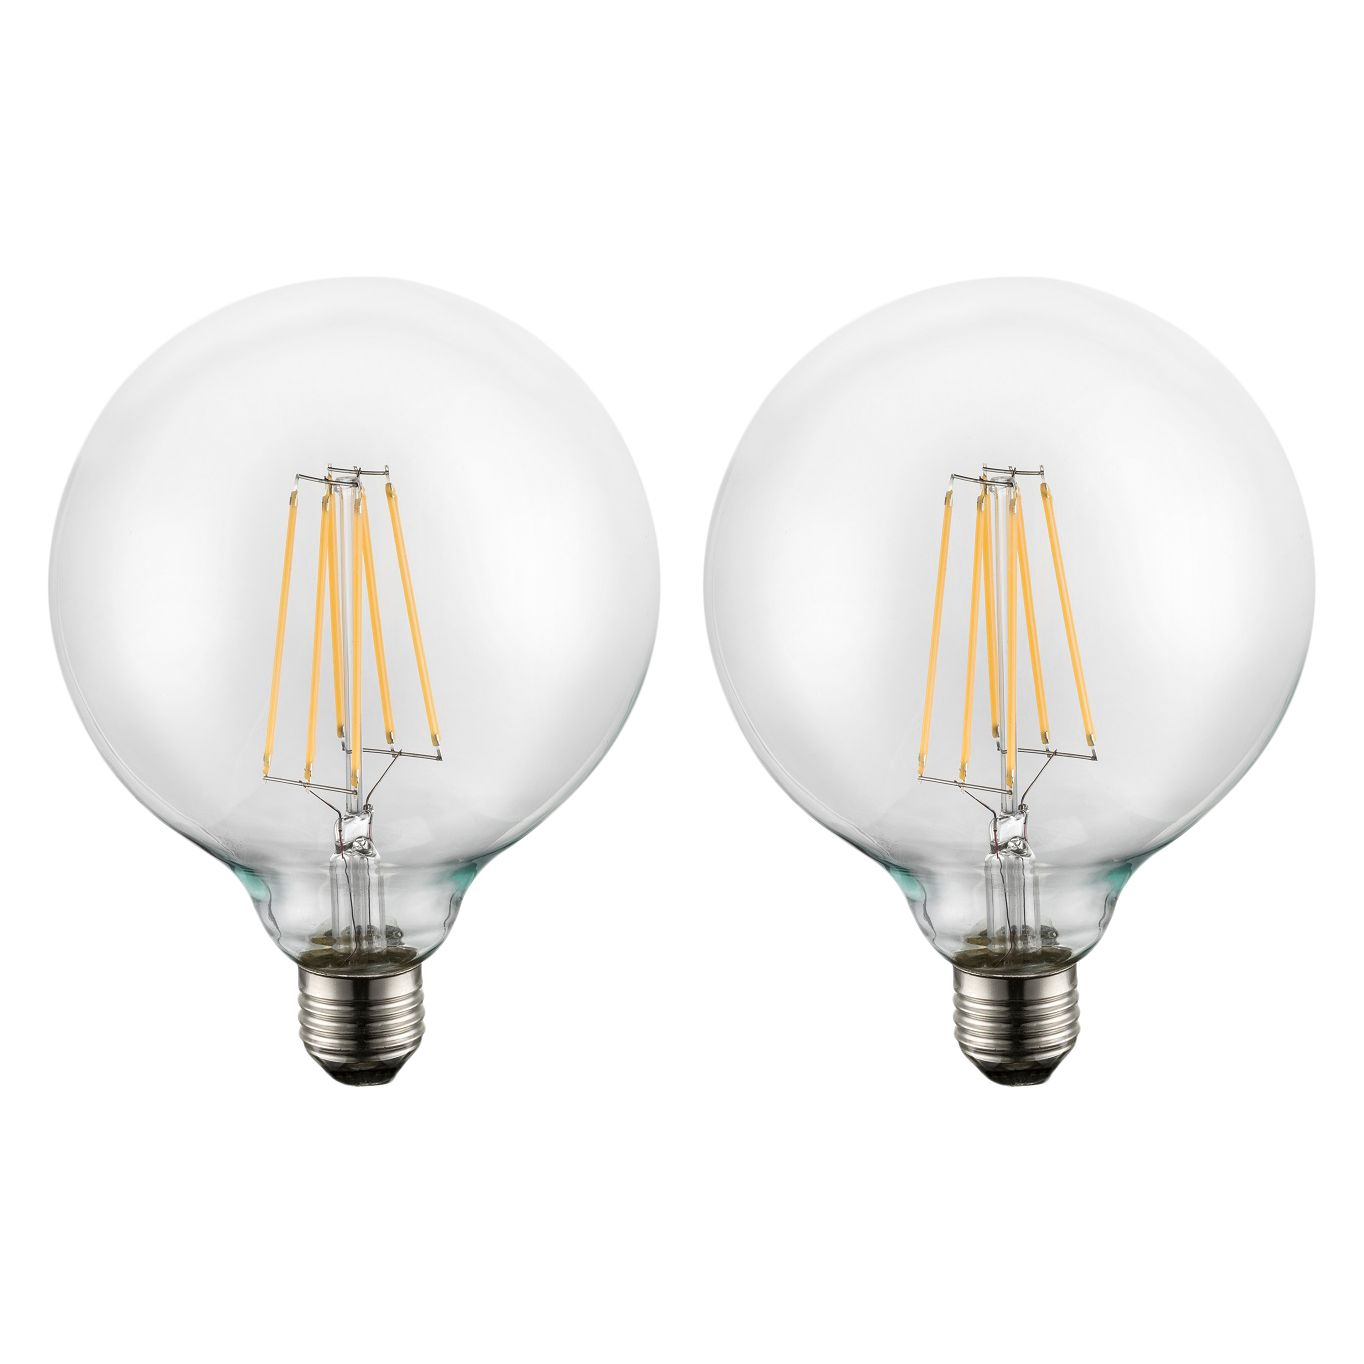 energie  A+, LED-lampen Claudy (2-delige set) - glas/aluminium, Globo Lighting